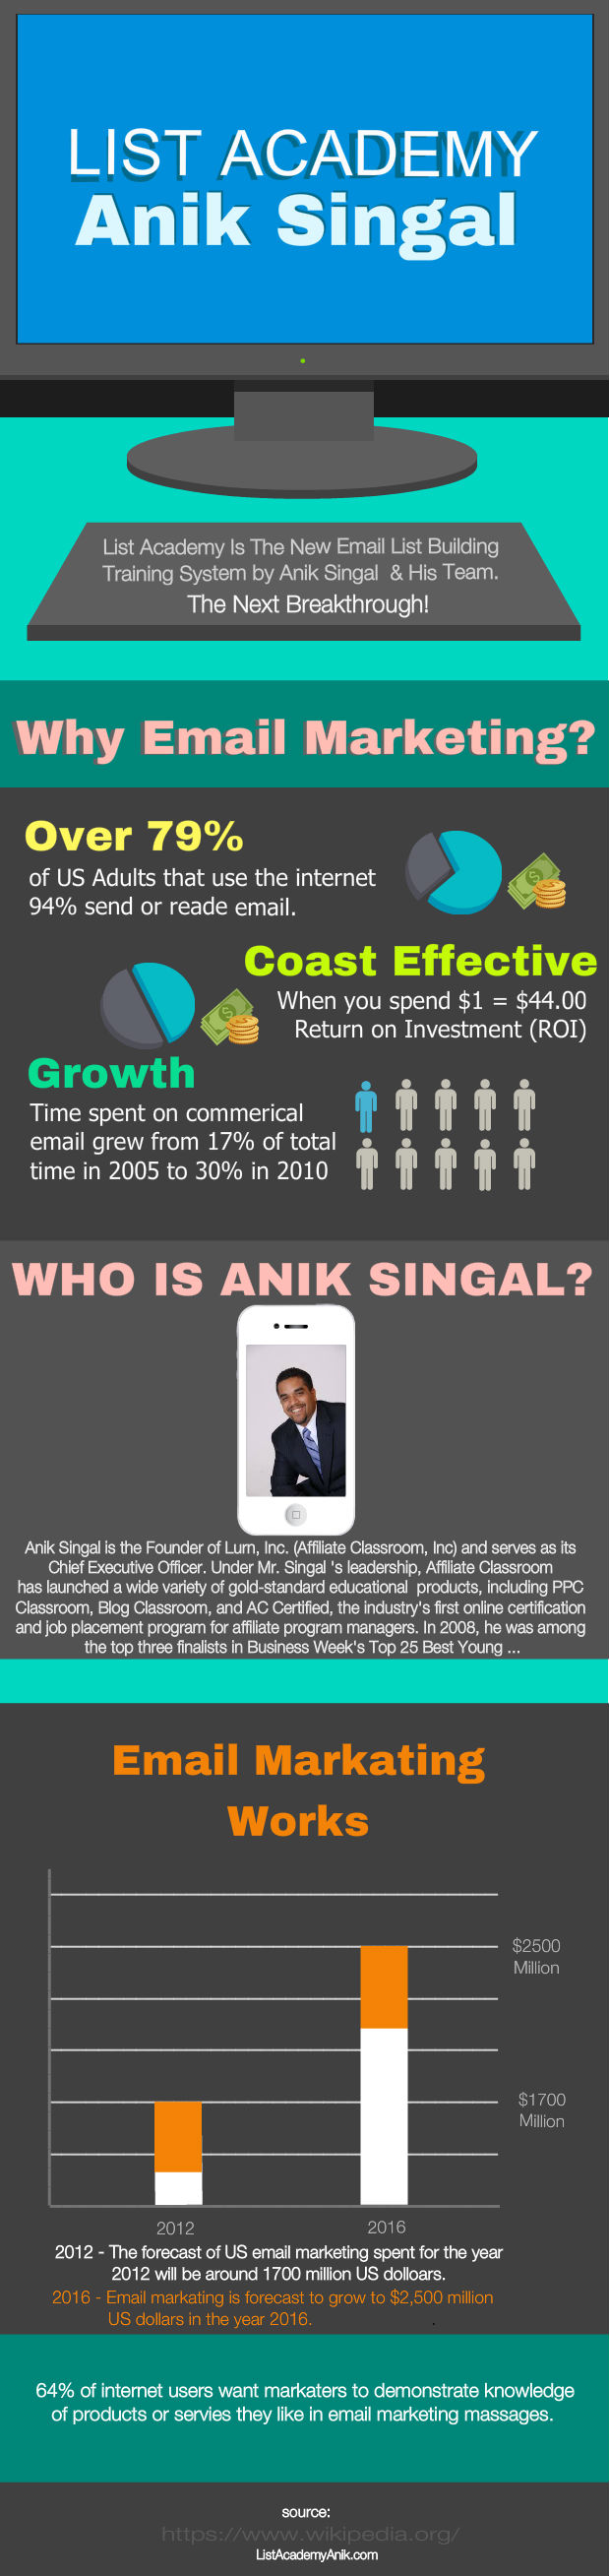 Anik Singal List Academy Review   Visual ly